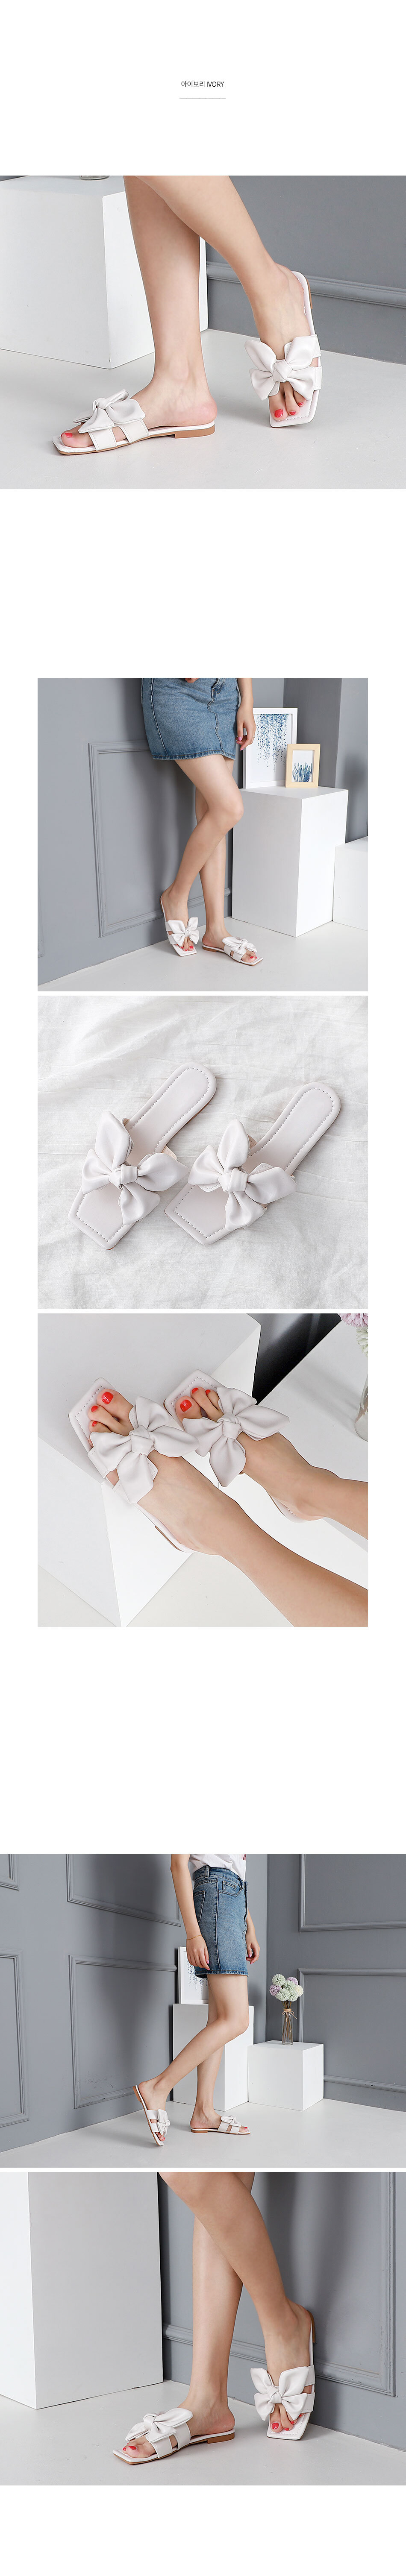 Isshu H type swell ribbon point low heel slippers 10722